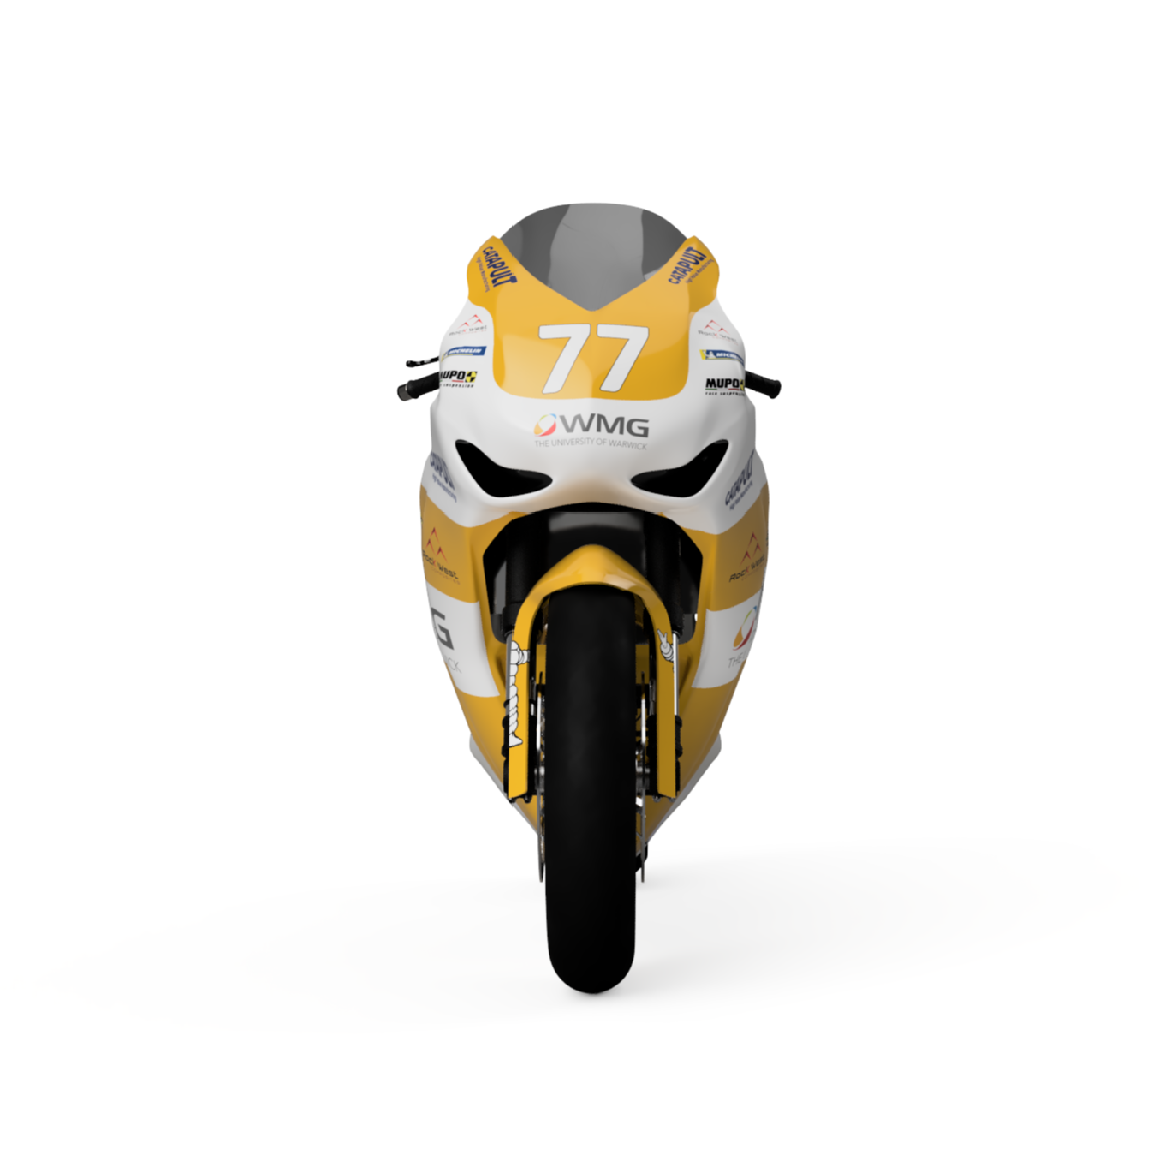 Newswise: Warwick Moto superbike designs unveiled